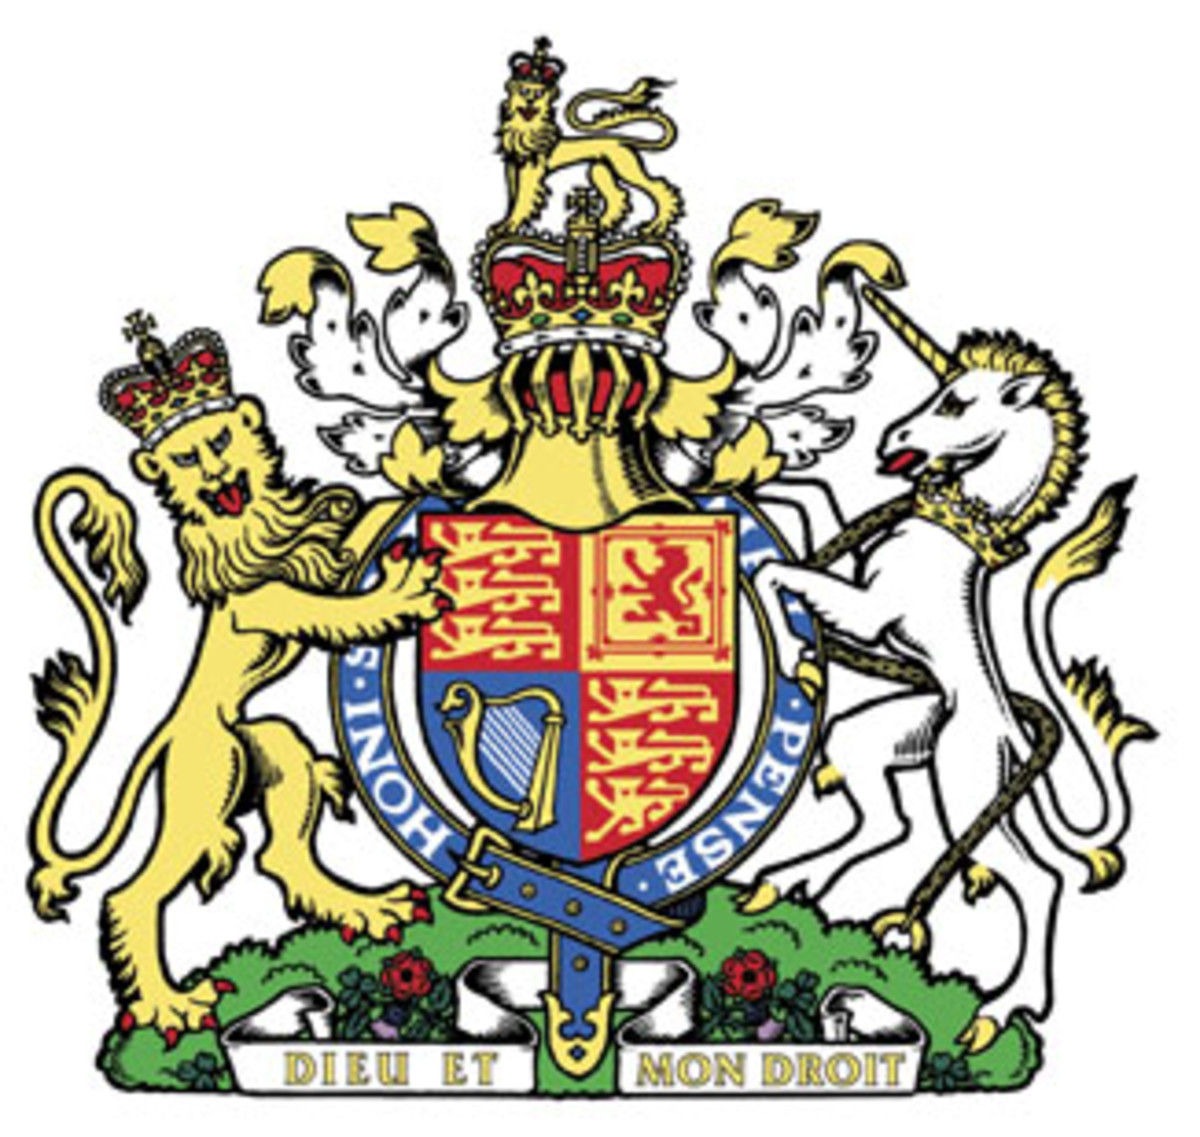 The British Royal Warrant symbol issued by Queen Elizabeth II